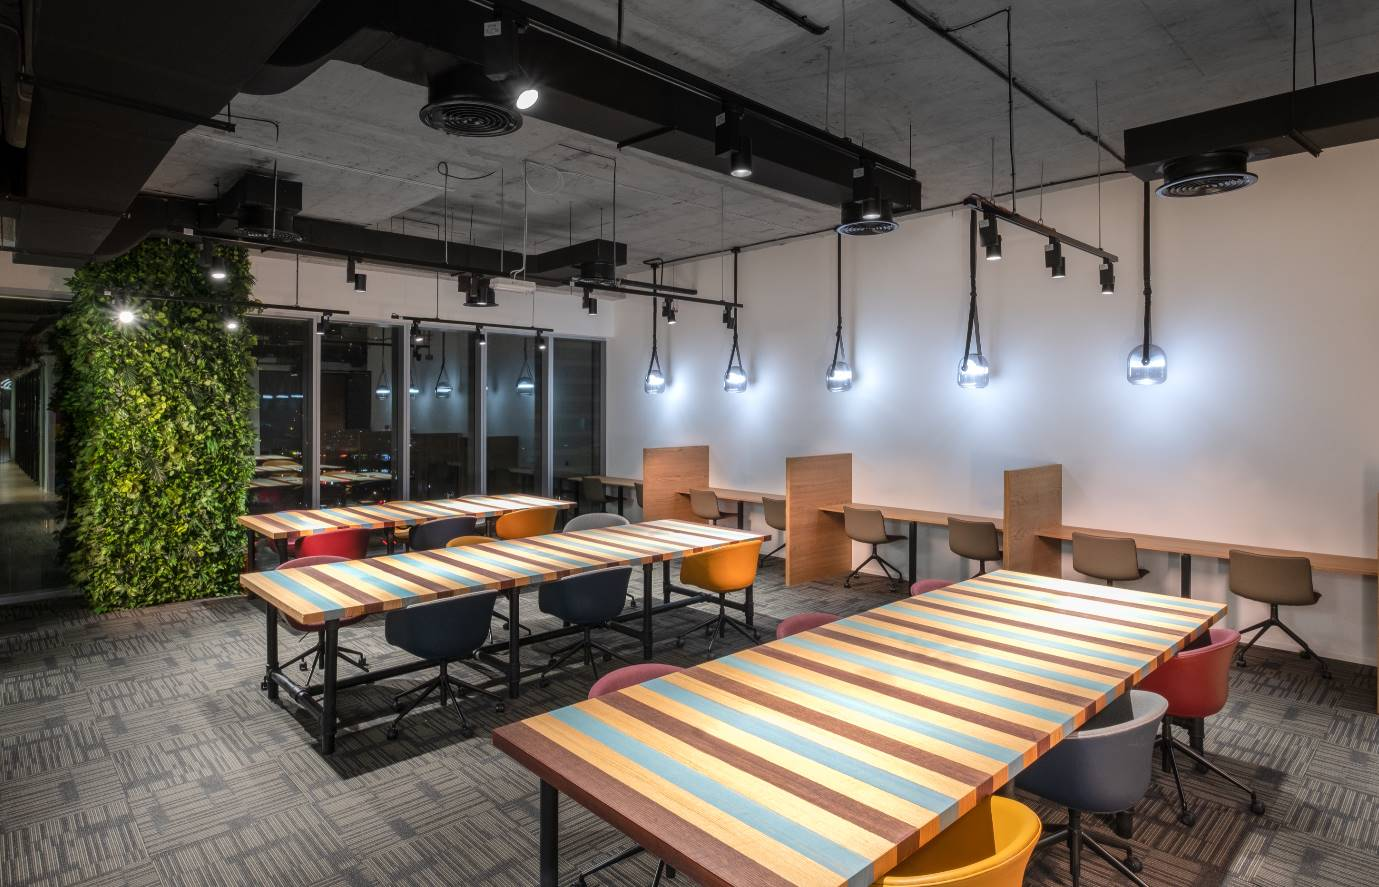 How LED Lighting in the Work Environment Can Increase Productivity